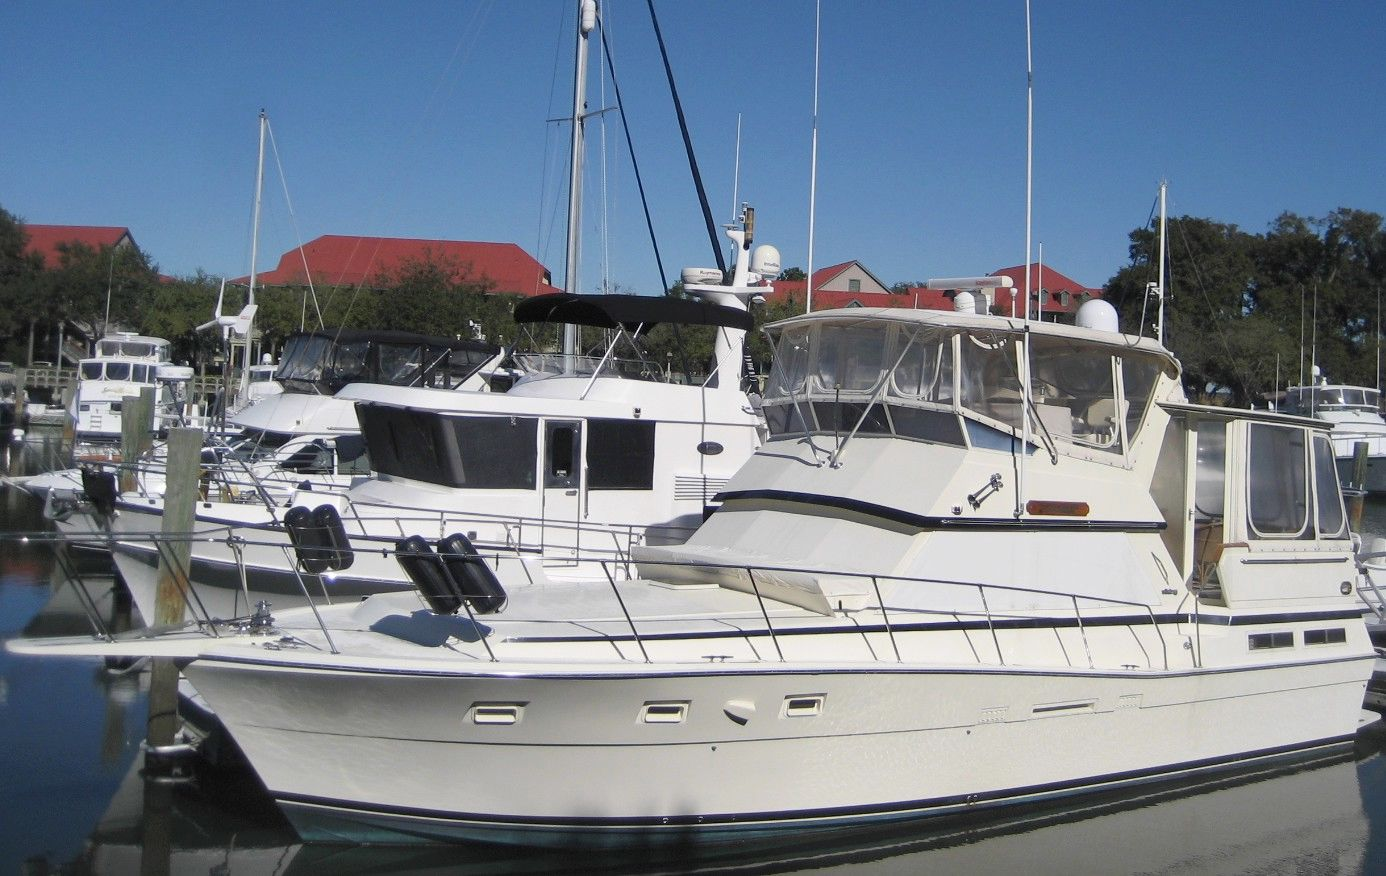 44 foot boats for sale in md boat listings for 44 viking motor yacht